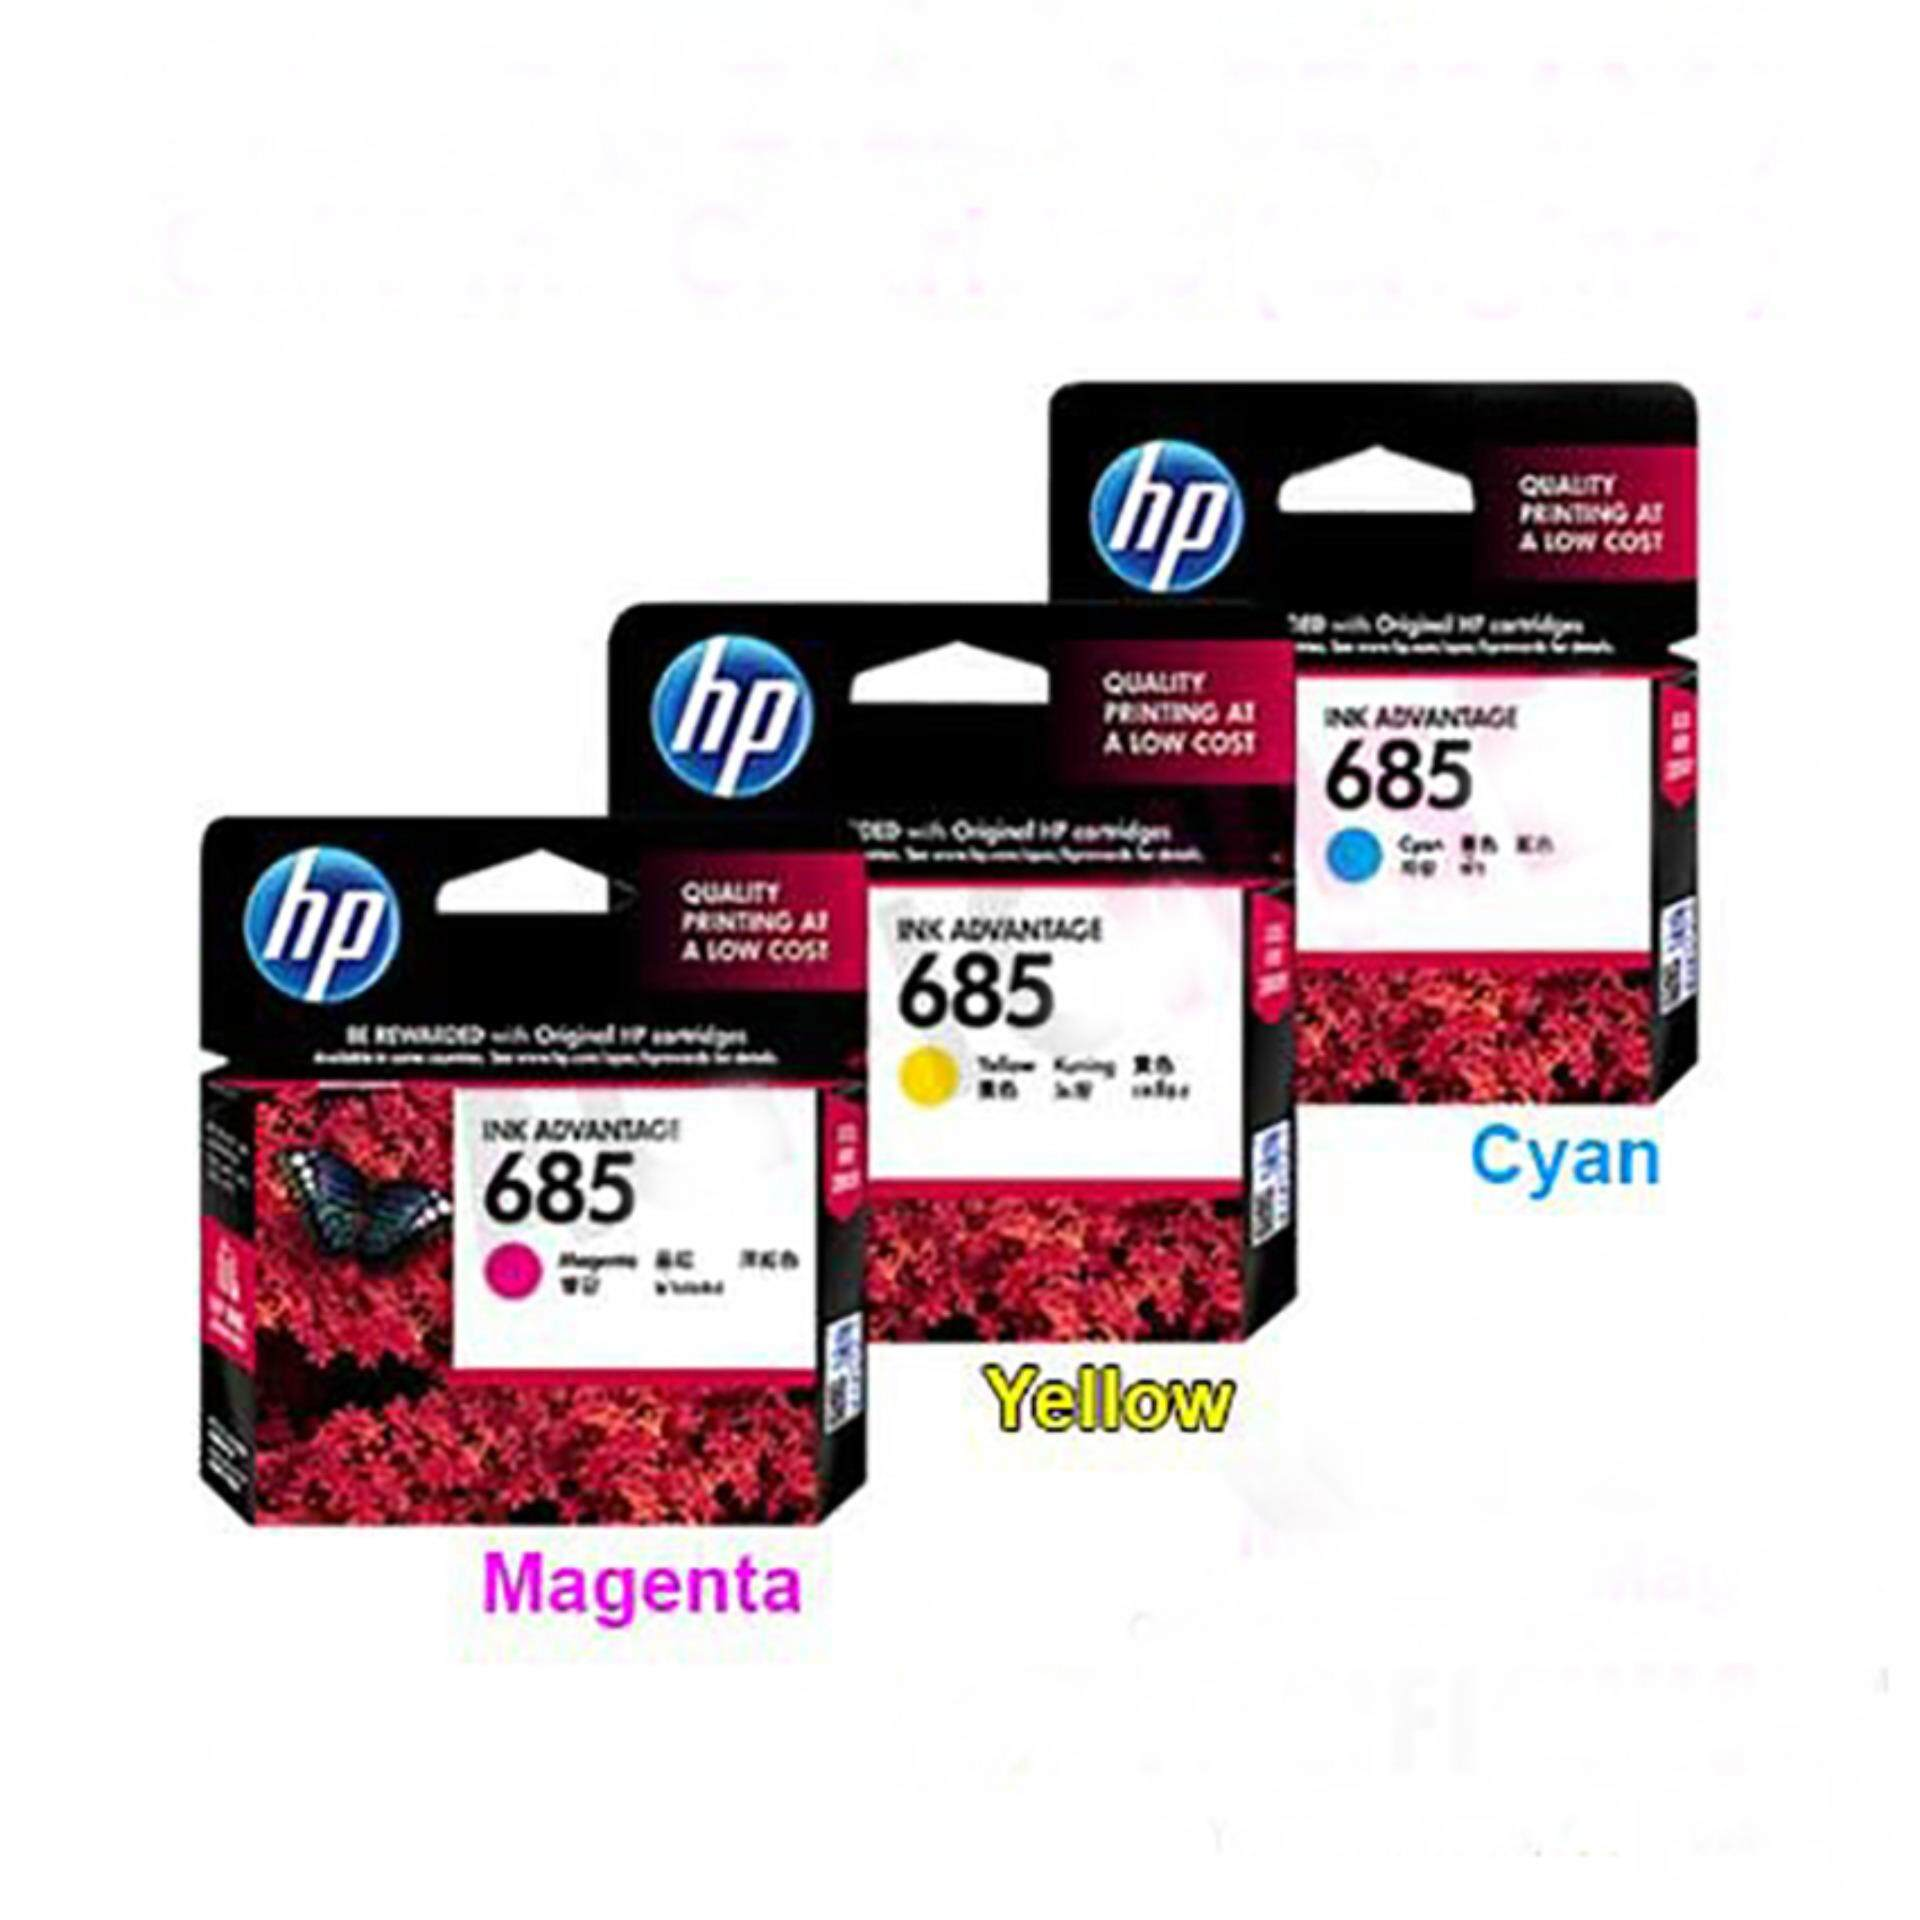 Hewlett Packard Printers Accessories Price In Malaysia Best Tinta Hp 45 Black Original 685 Combo 3 1 Free Ink Cartridge